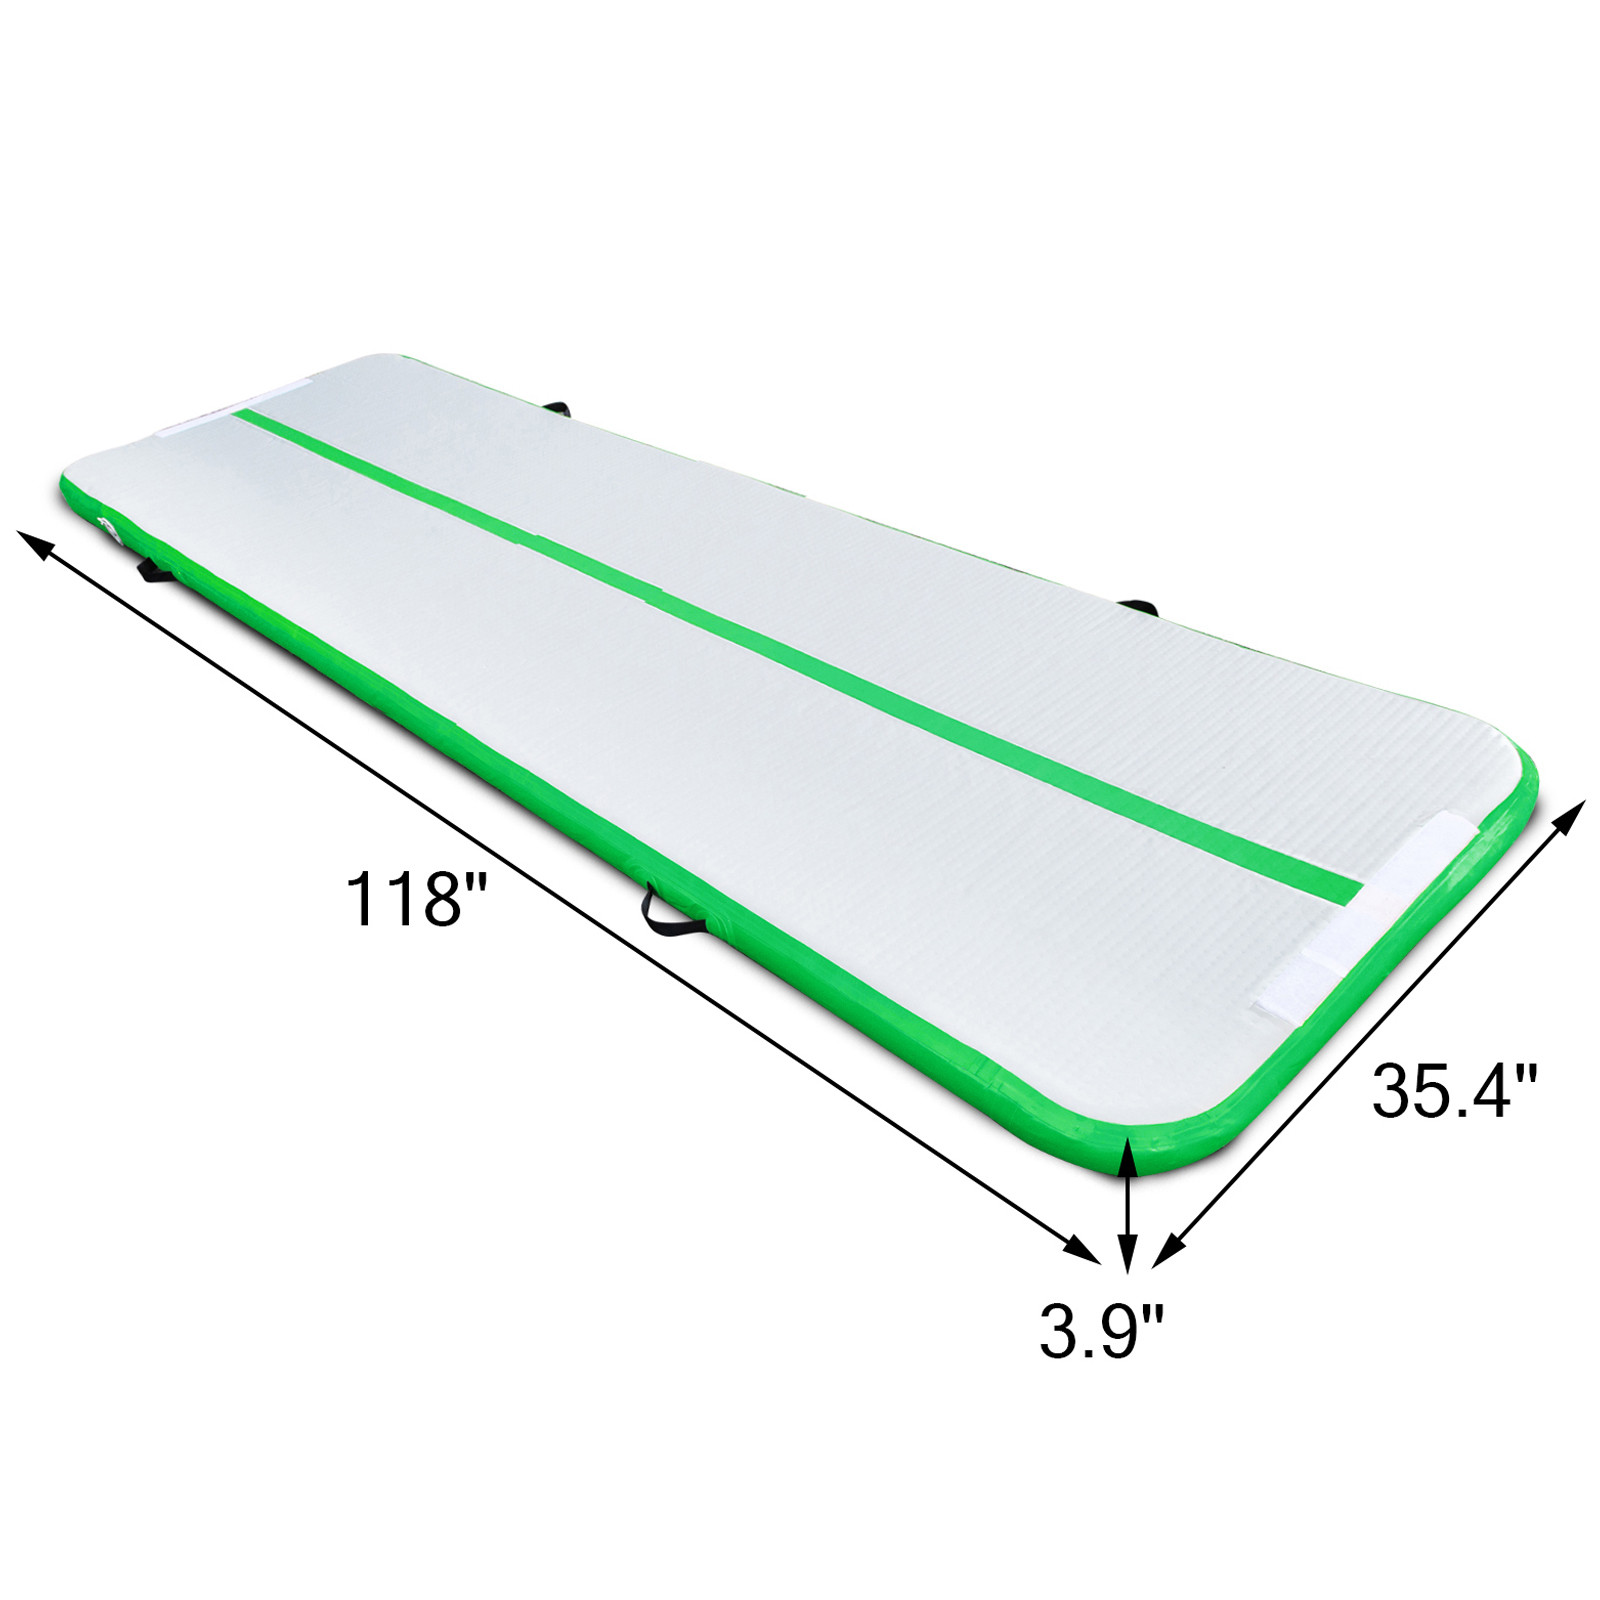 10x3ft Airtrack Inflatable Air Track Floor Home Gymnastics